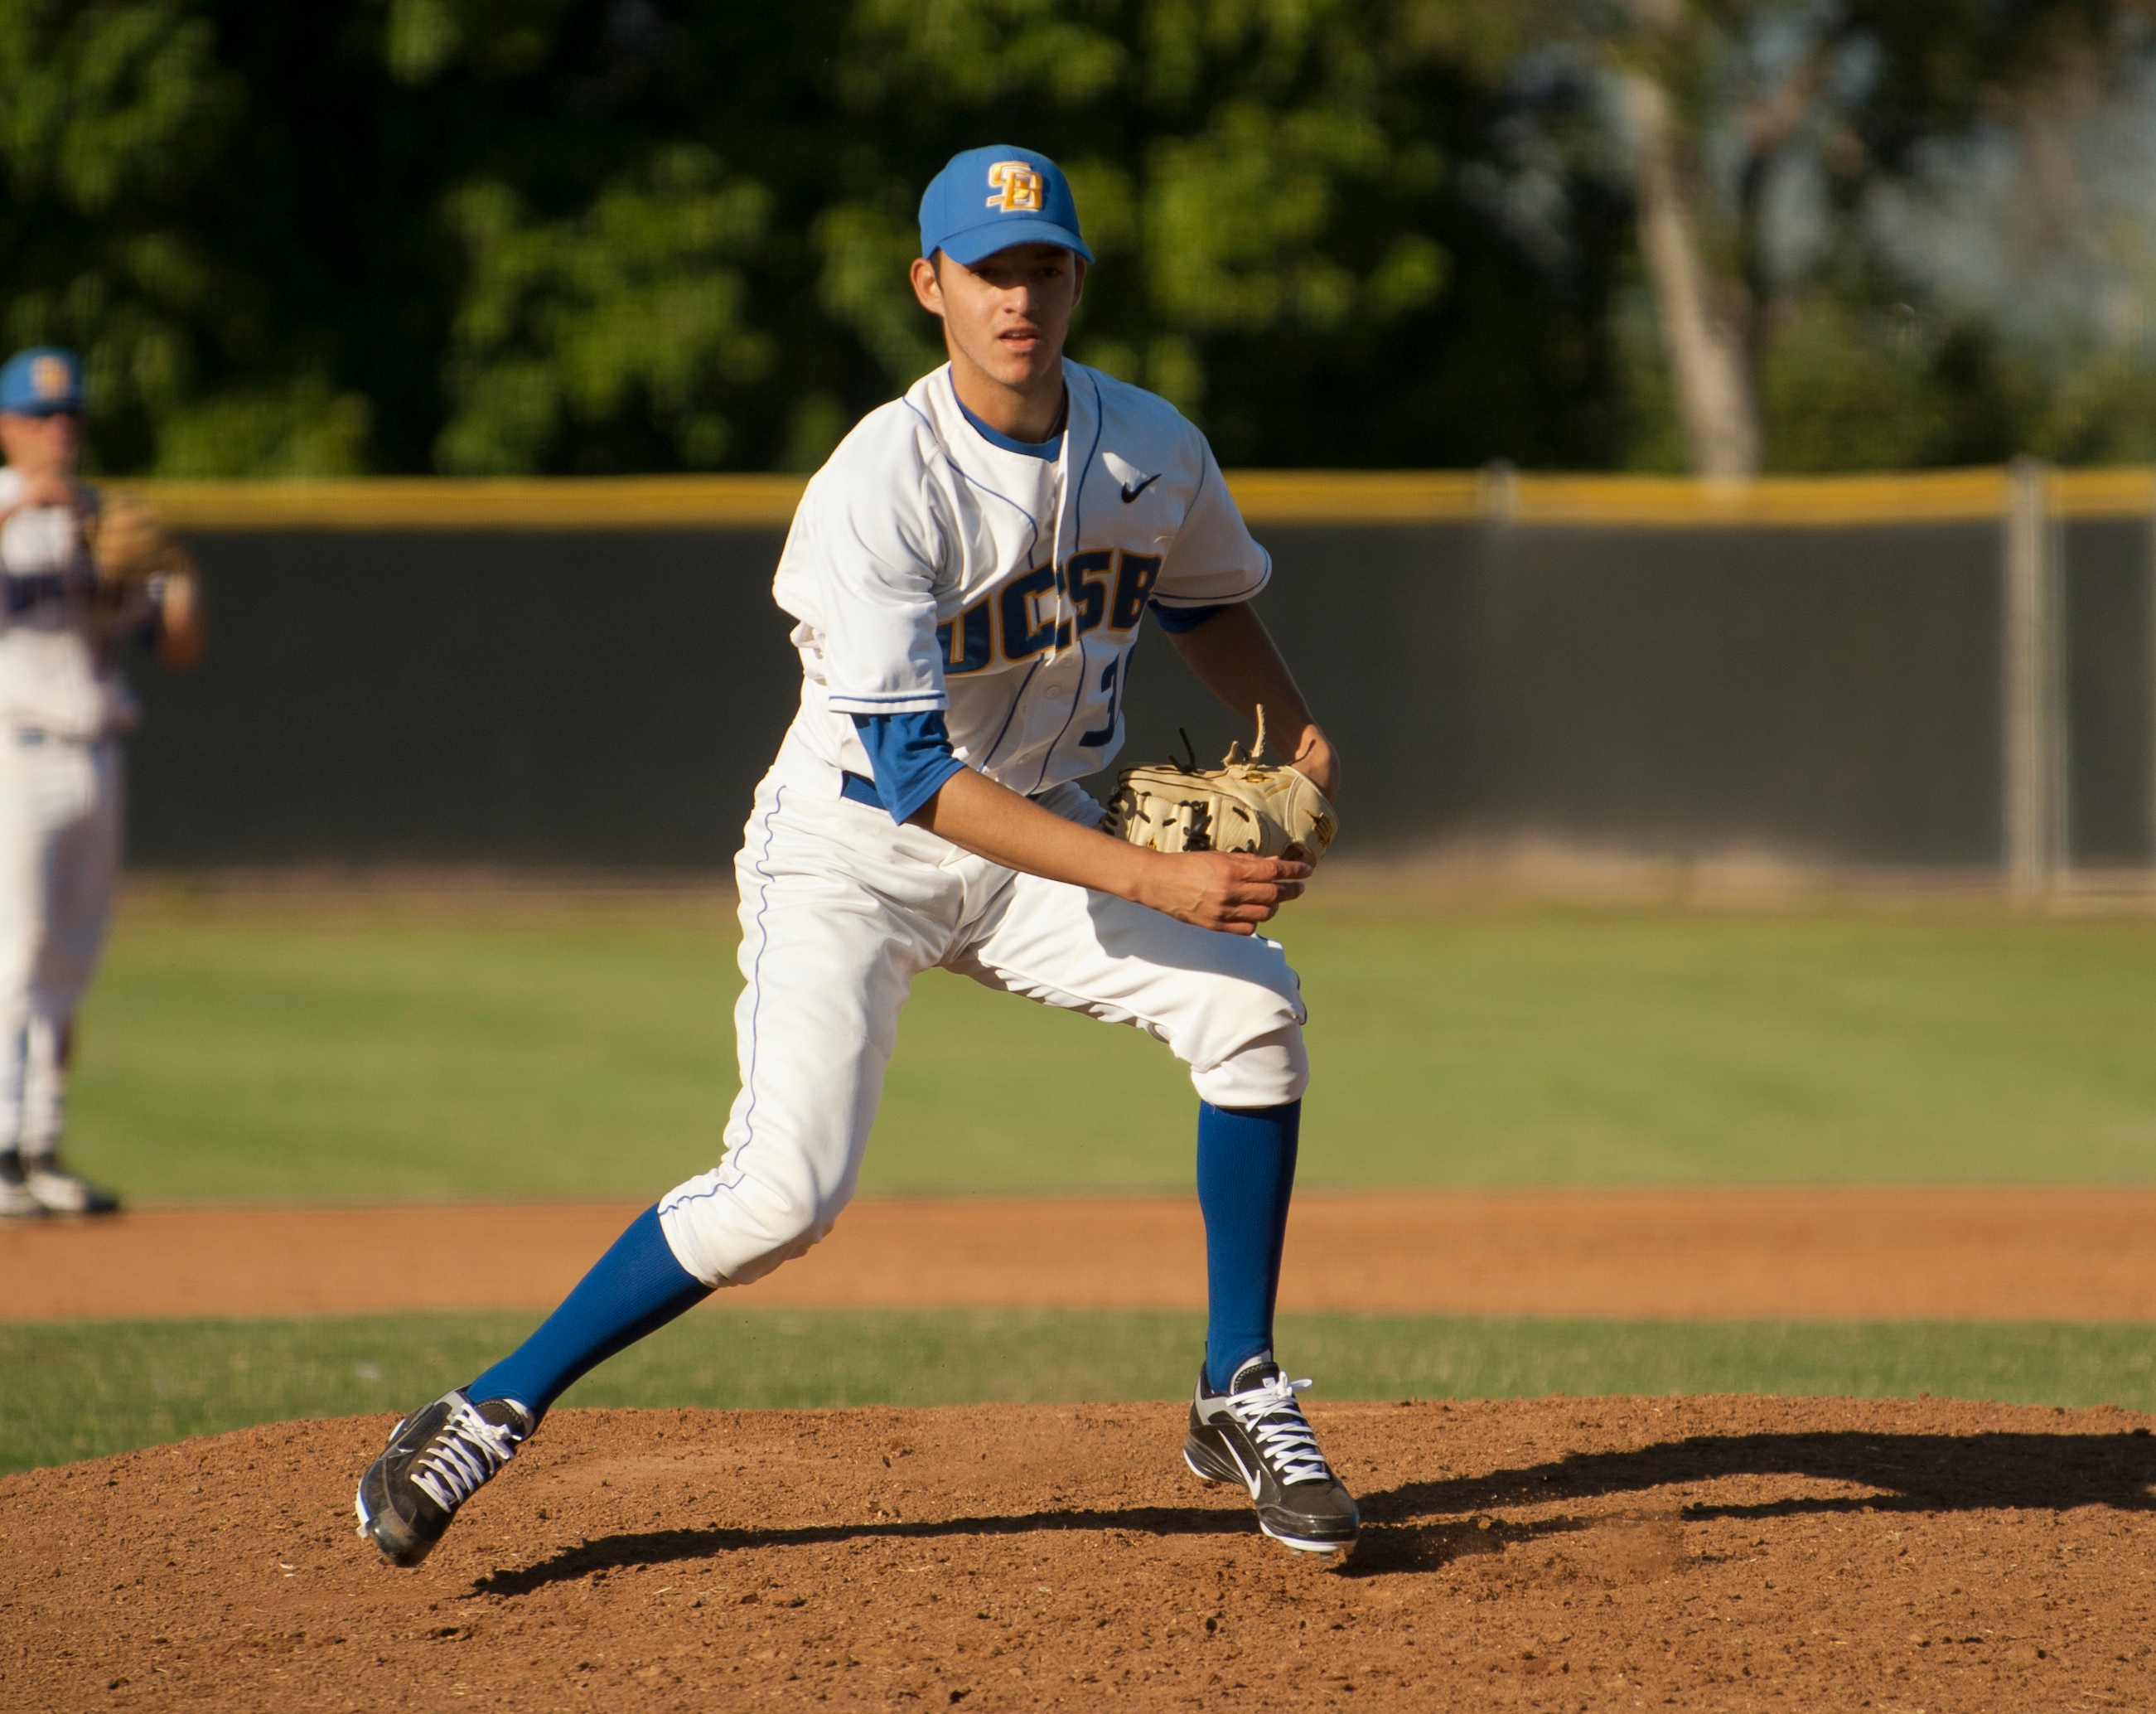 Greg Davis Named UCSBgauchos.com Athlete of the Week